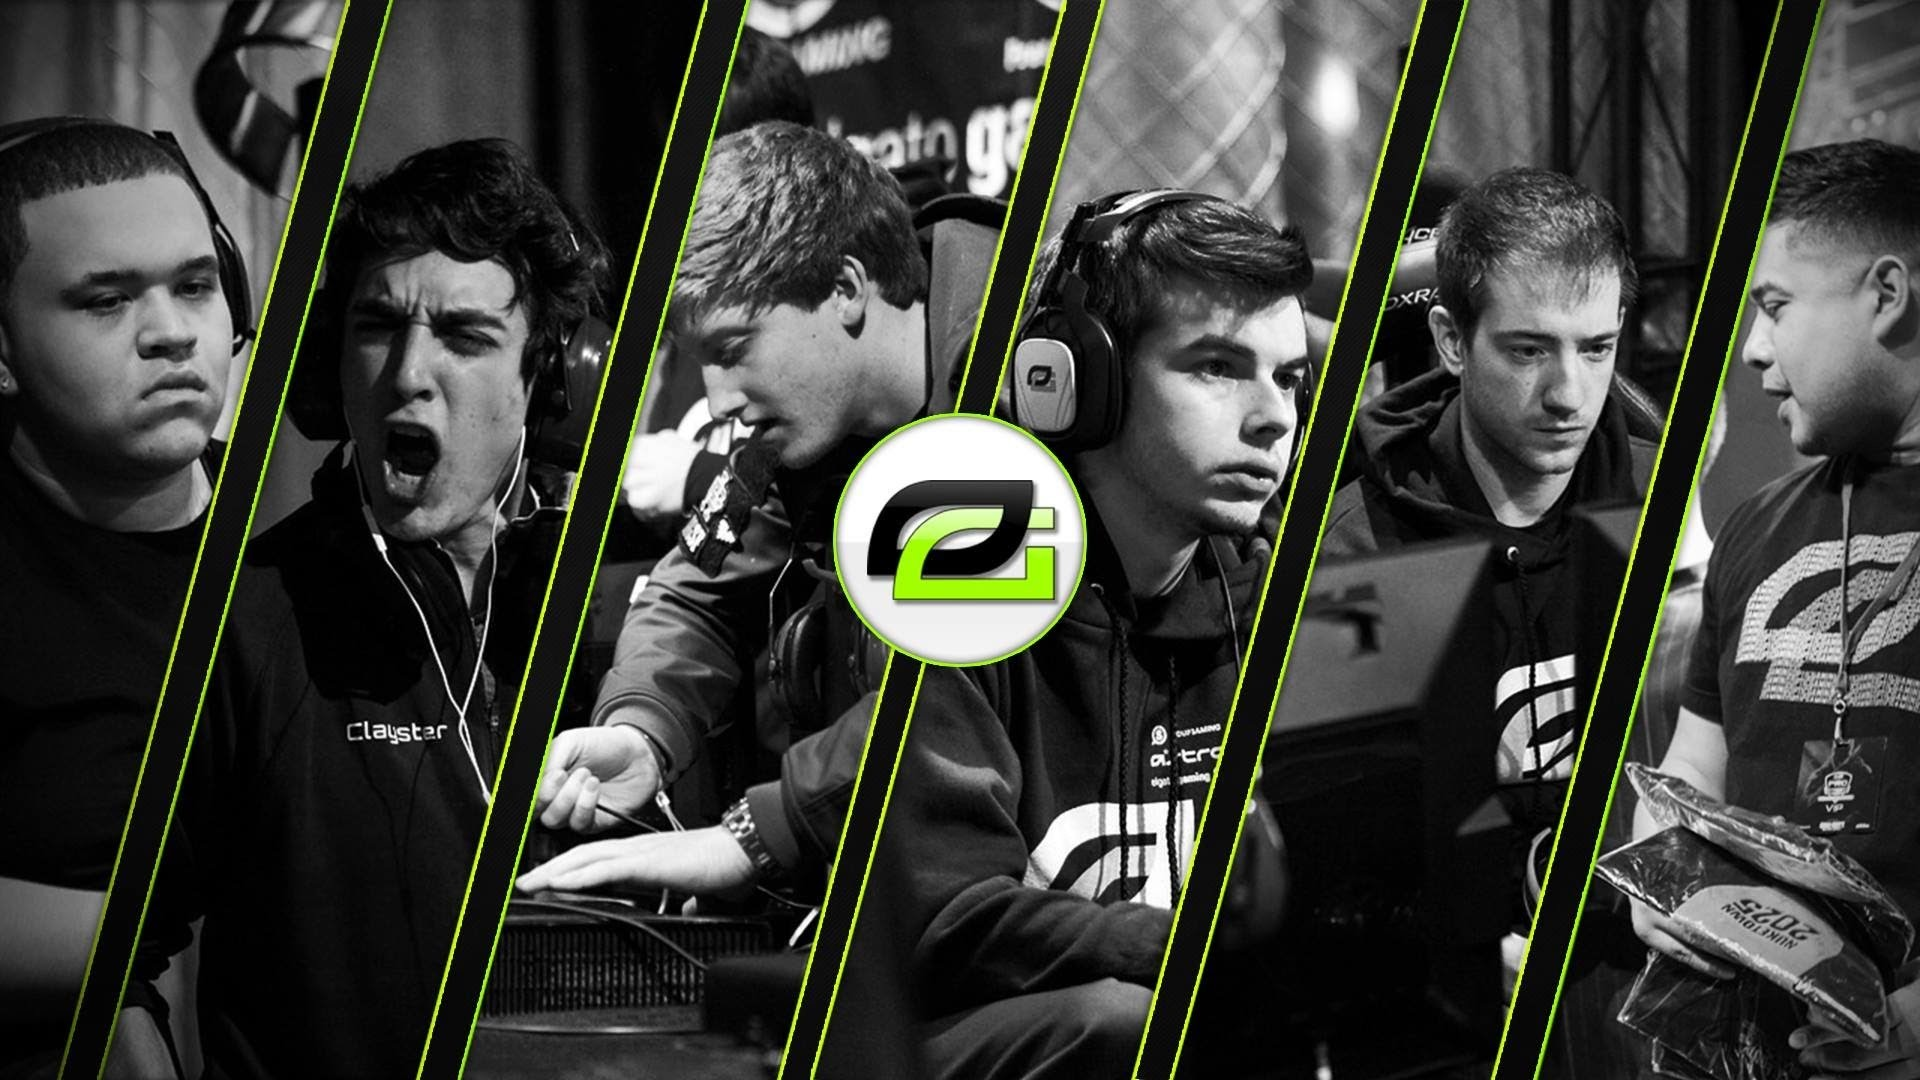 1920x1080 Optic-gaming-roster-wallpapers